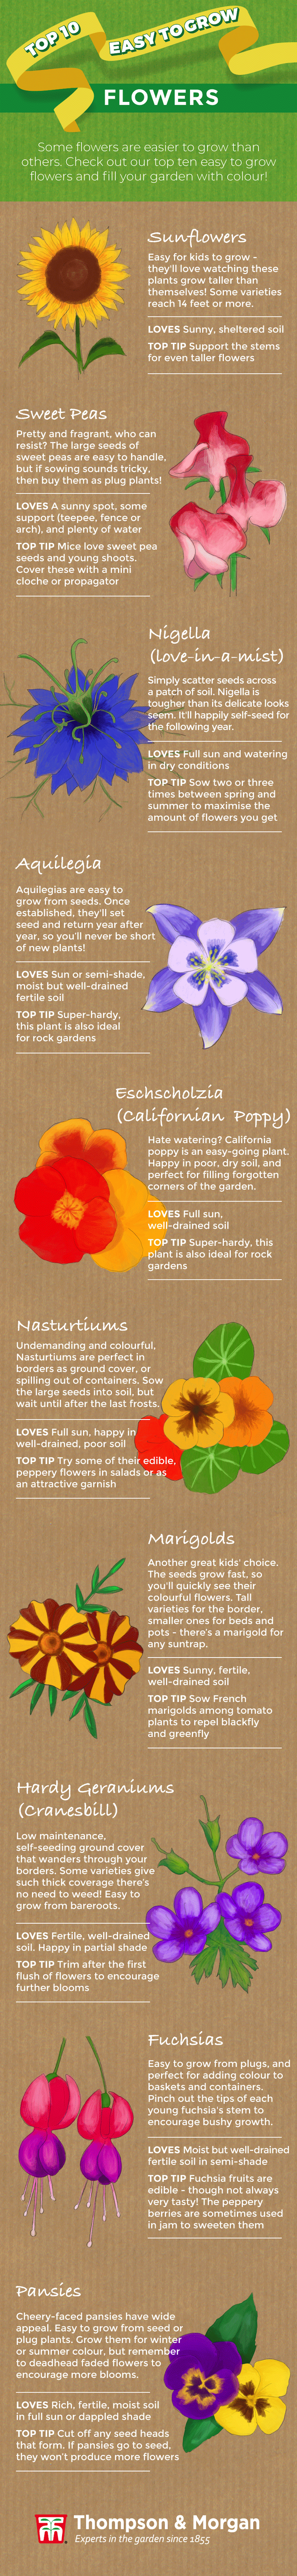 Top 10 easy to grow flower plants and seeds for beginners top ten easy to grow flowers infographic from thompson morgan izmirmasajfo